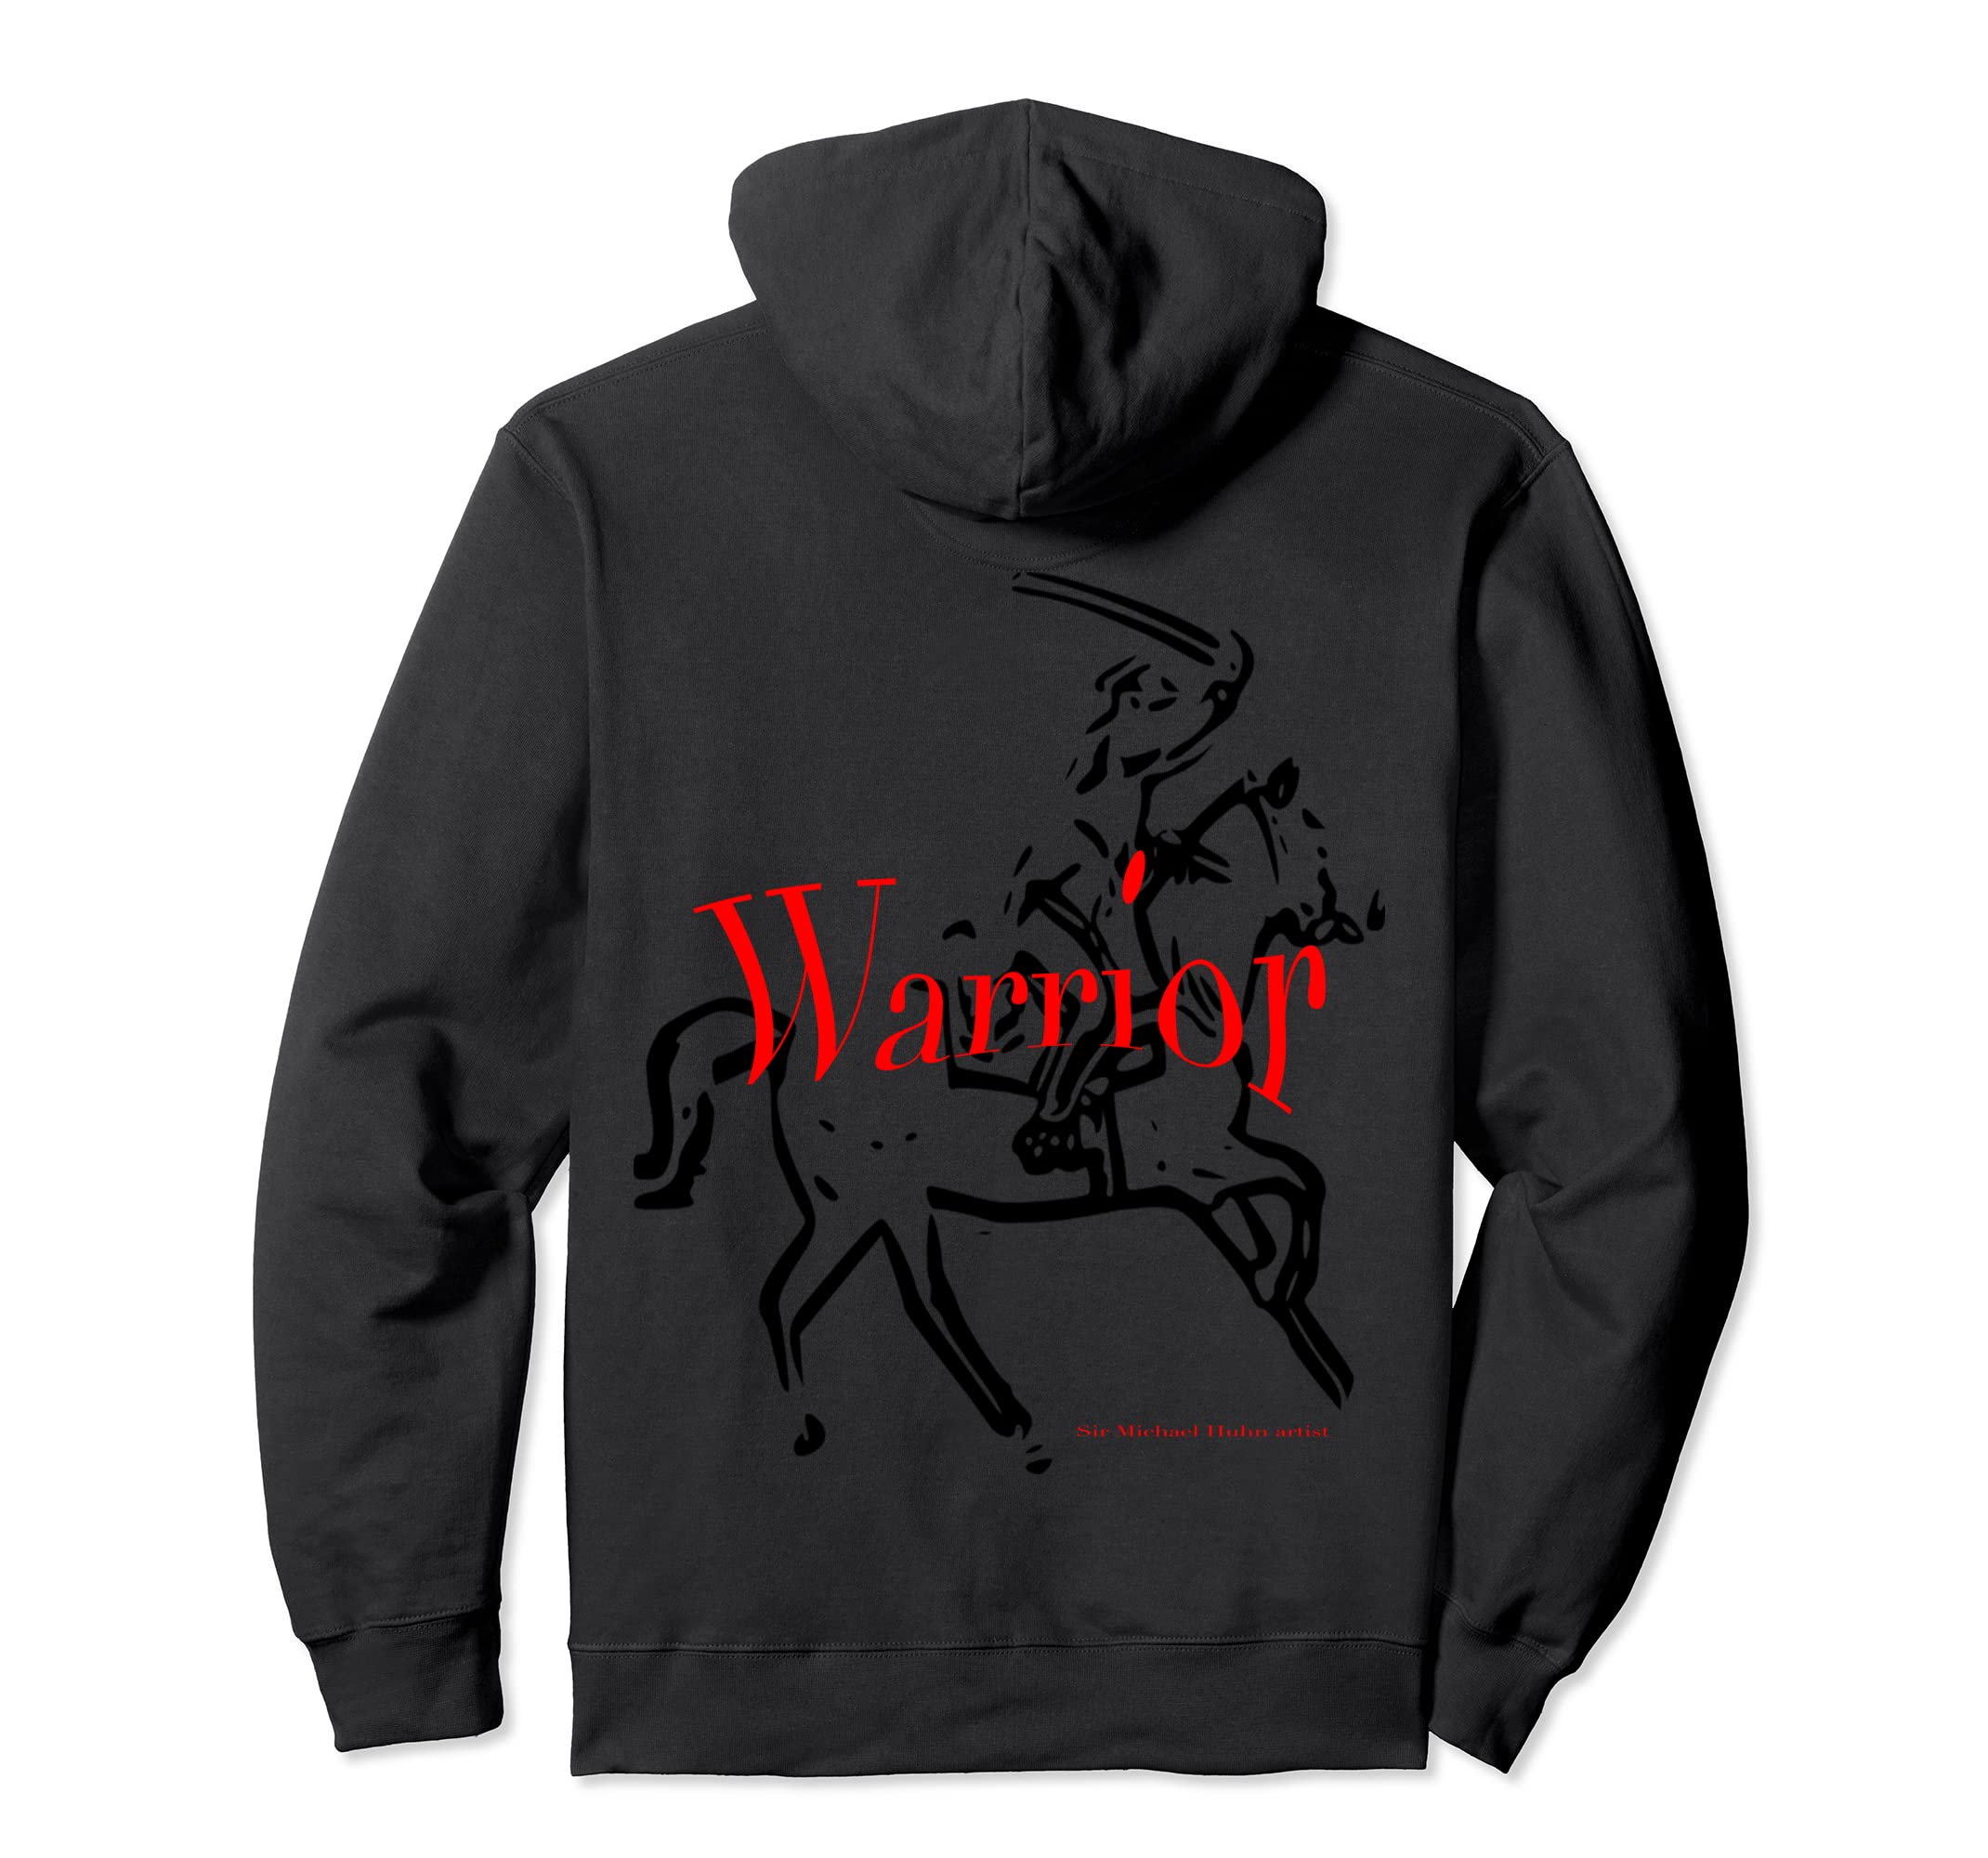 classic sir Michael Huhn Artist officical warrior hoodie-azvn